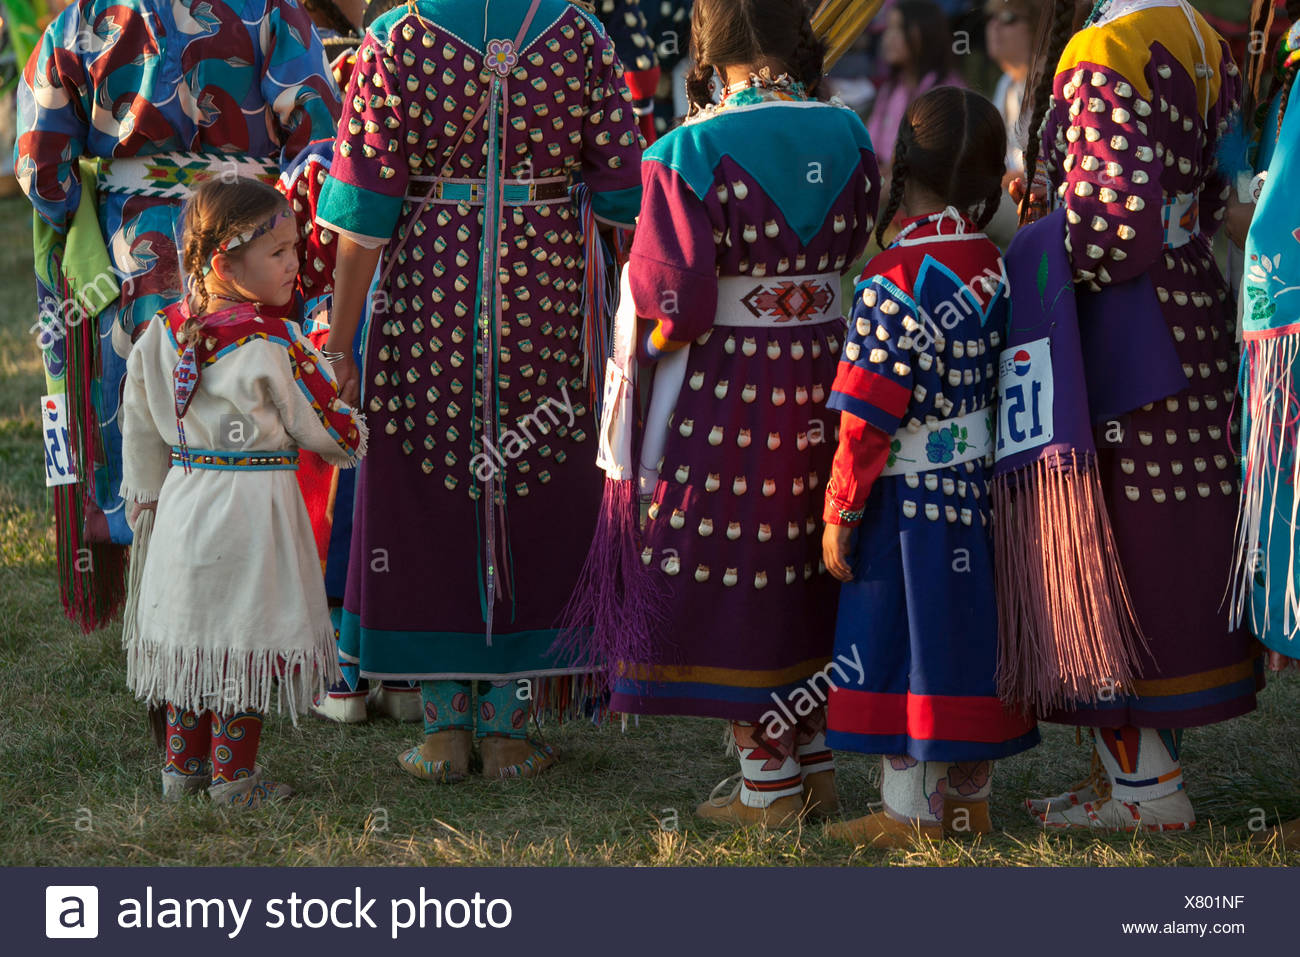 Girls and women wear traditional regalia for the annual pow wow at the Crow Indian Reservation. - Stock Image